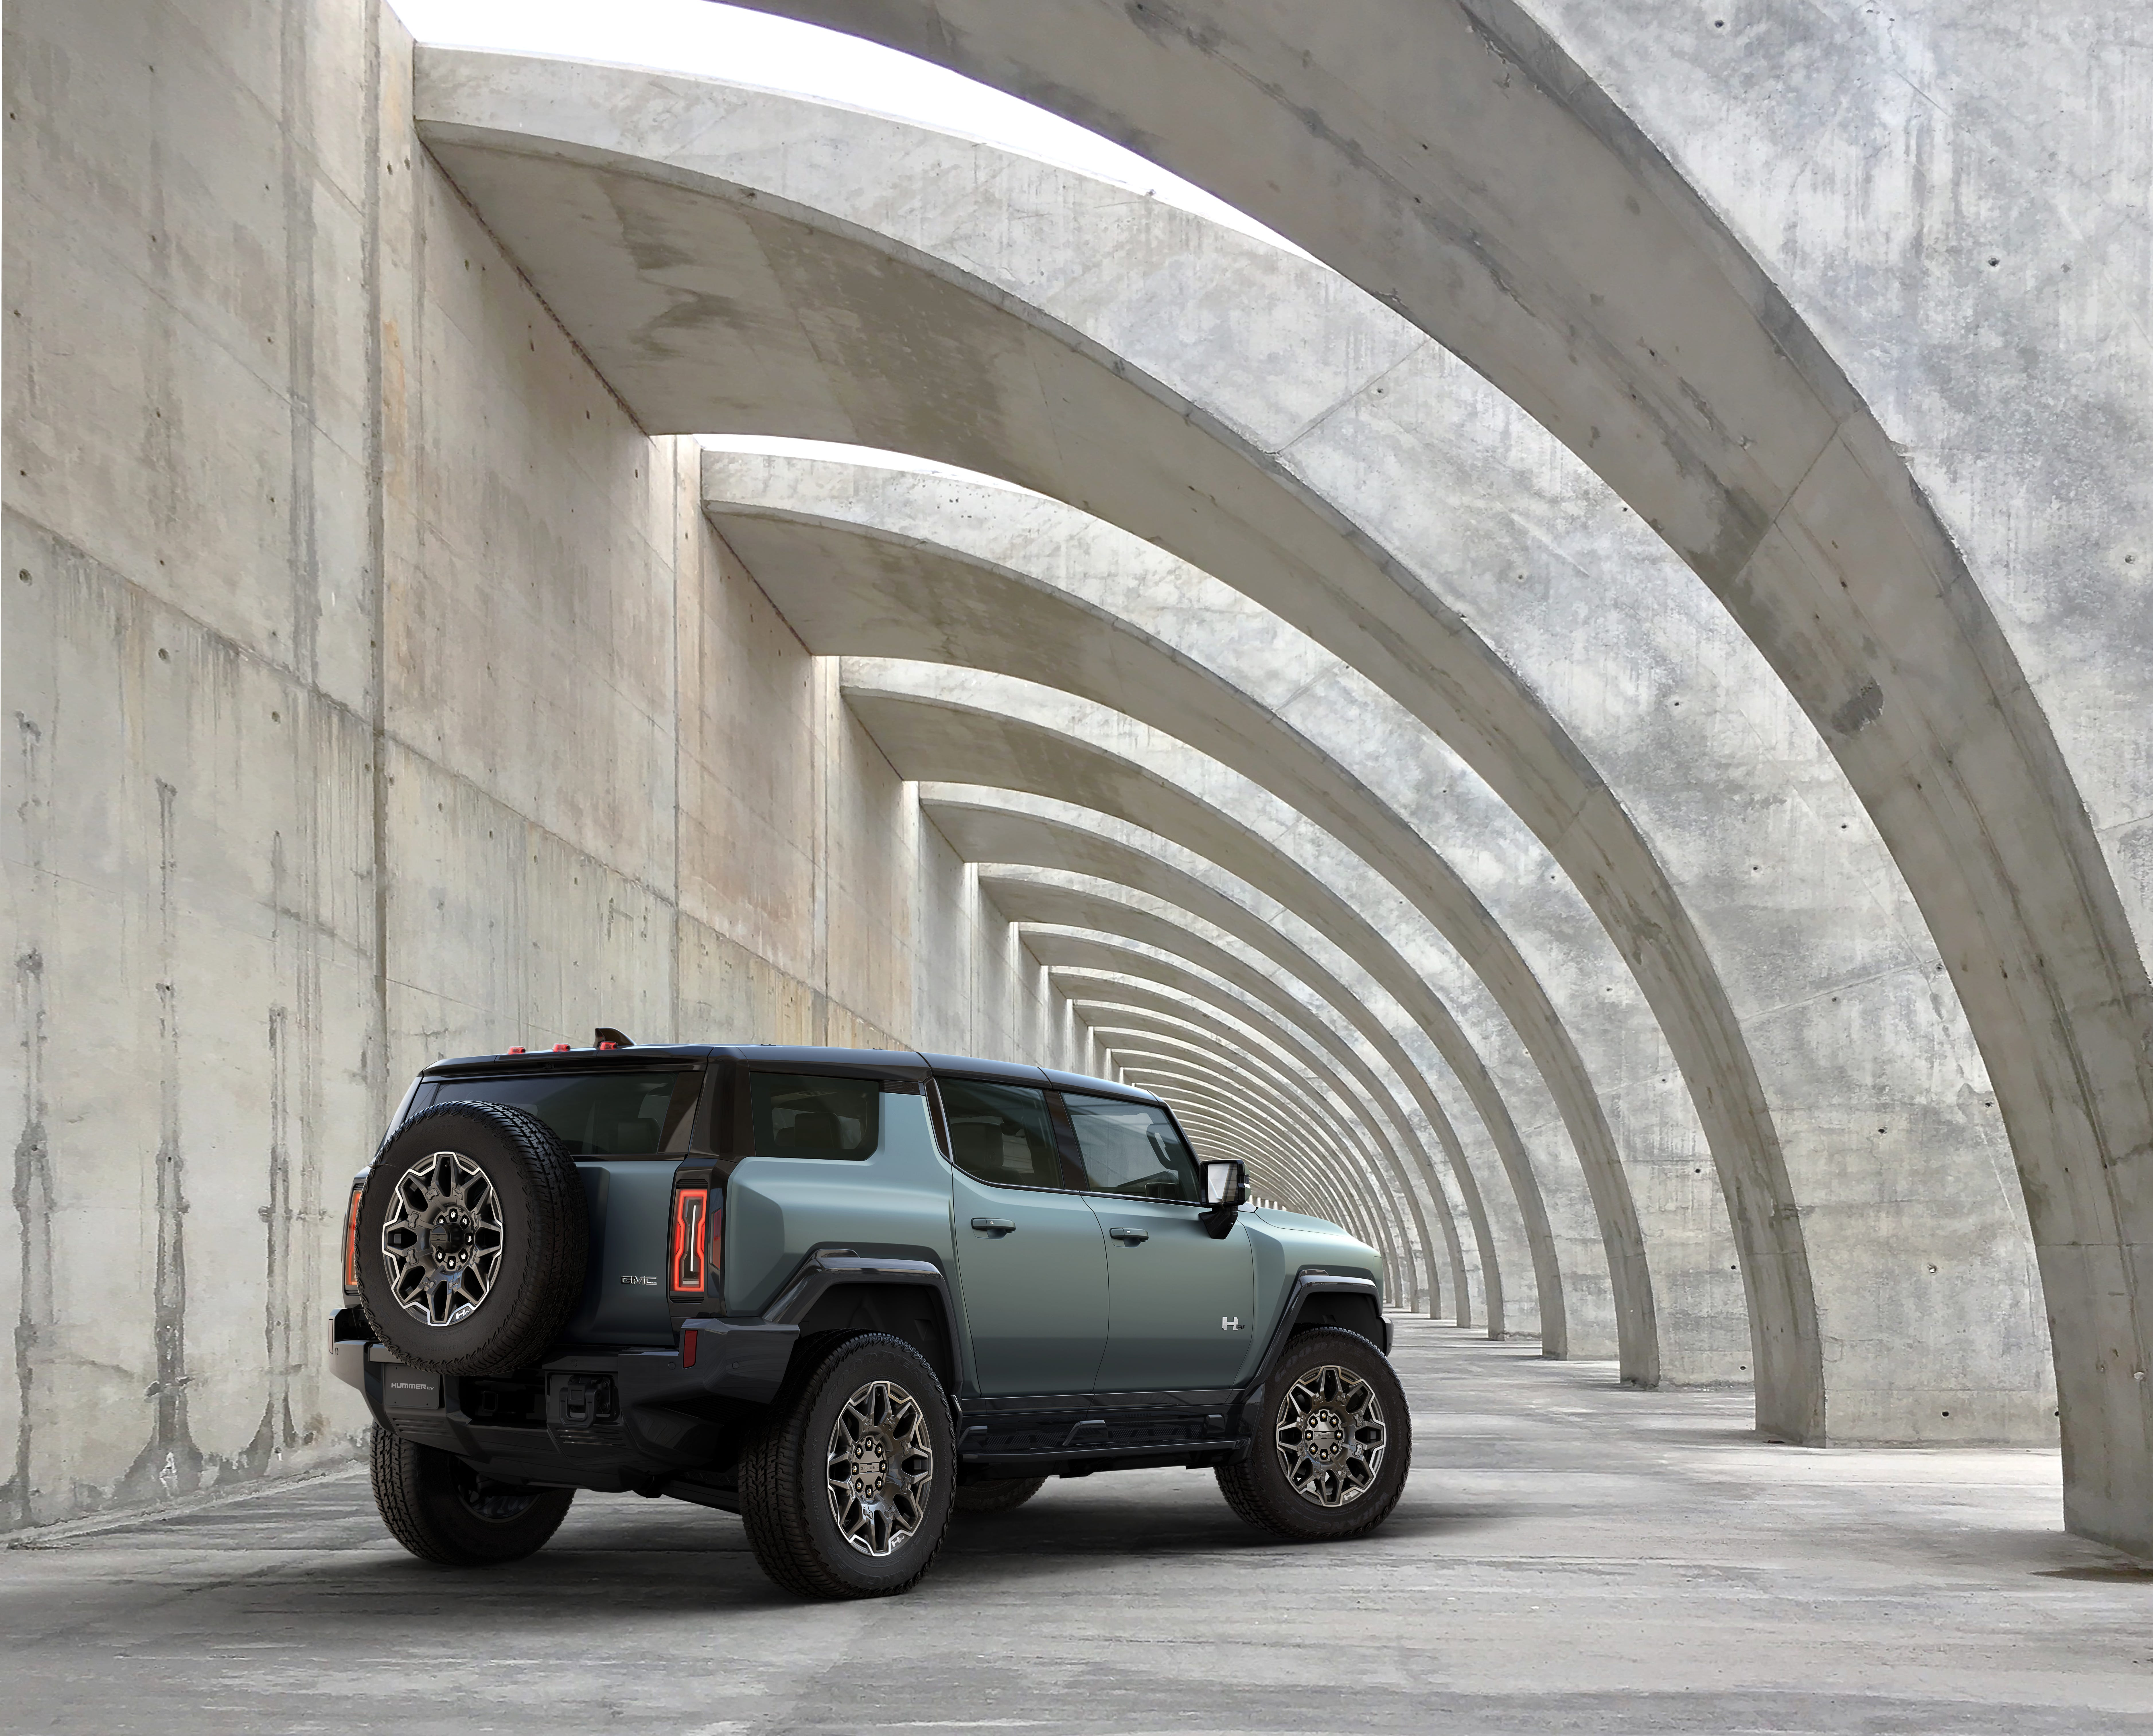 GMC reveals Hummer EV SUV: What it will cost, include